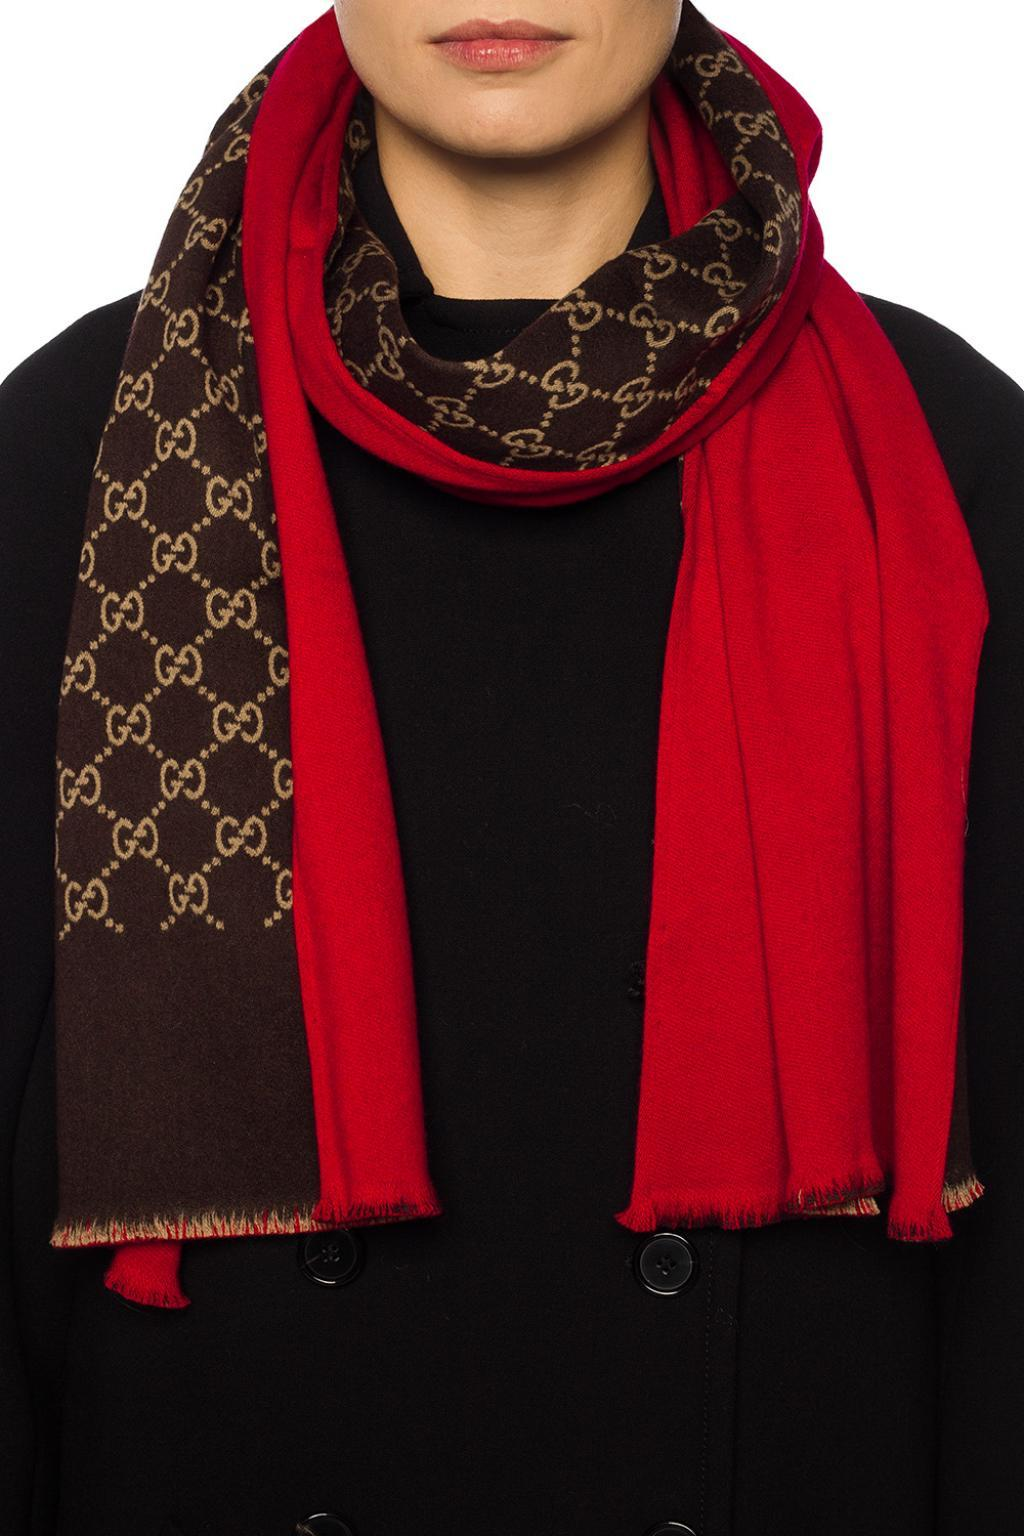 cd4cb762ad3 Gucci - Red Reversible Scarf - Lyst. View fullscreen